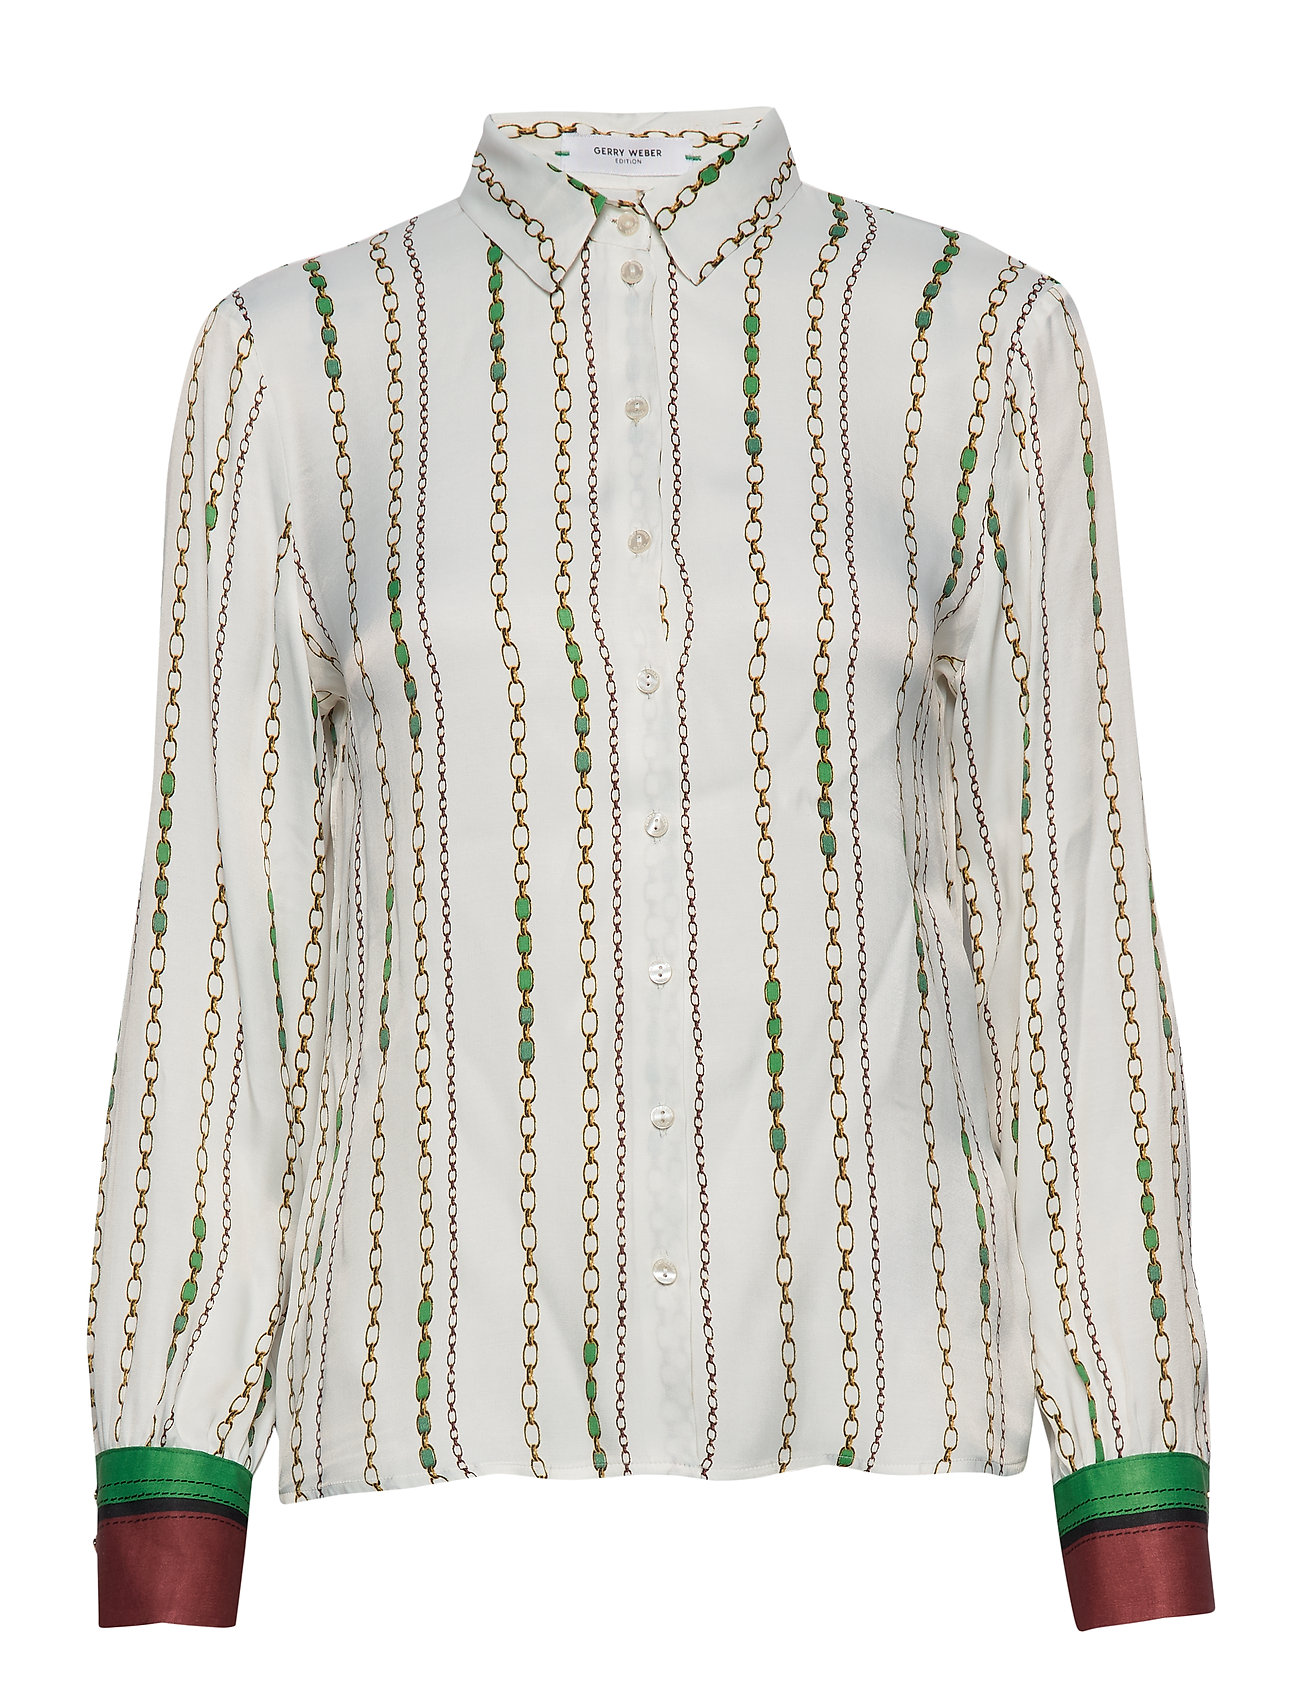 Gerry Weber Edition BLOUSE LONG-SLEEVE - OFFWHITE-BOTTLE GREEN